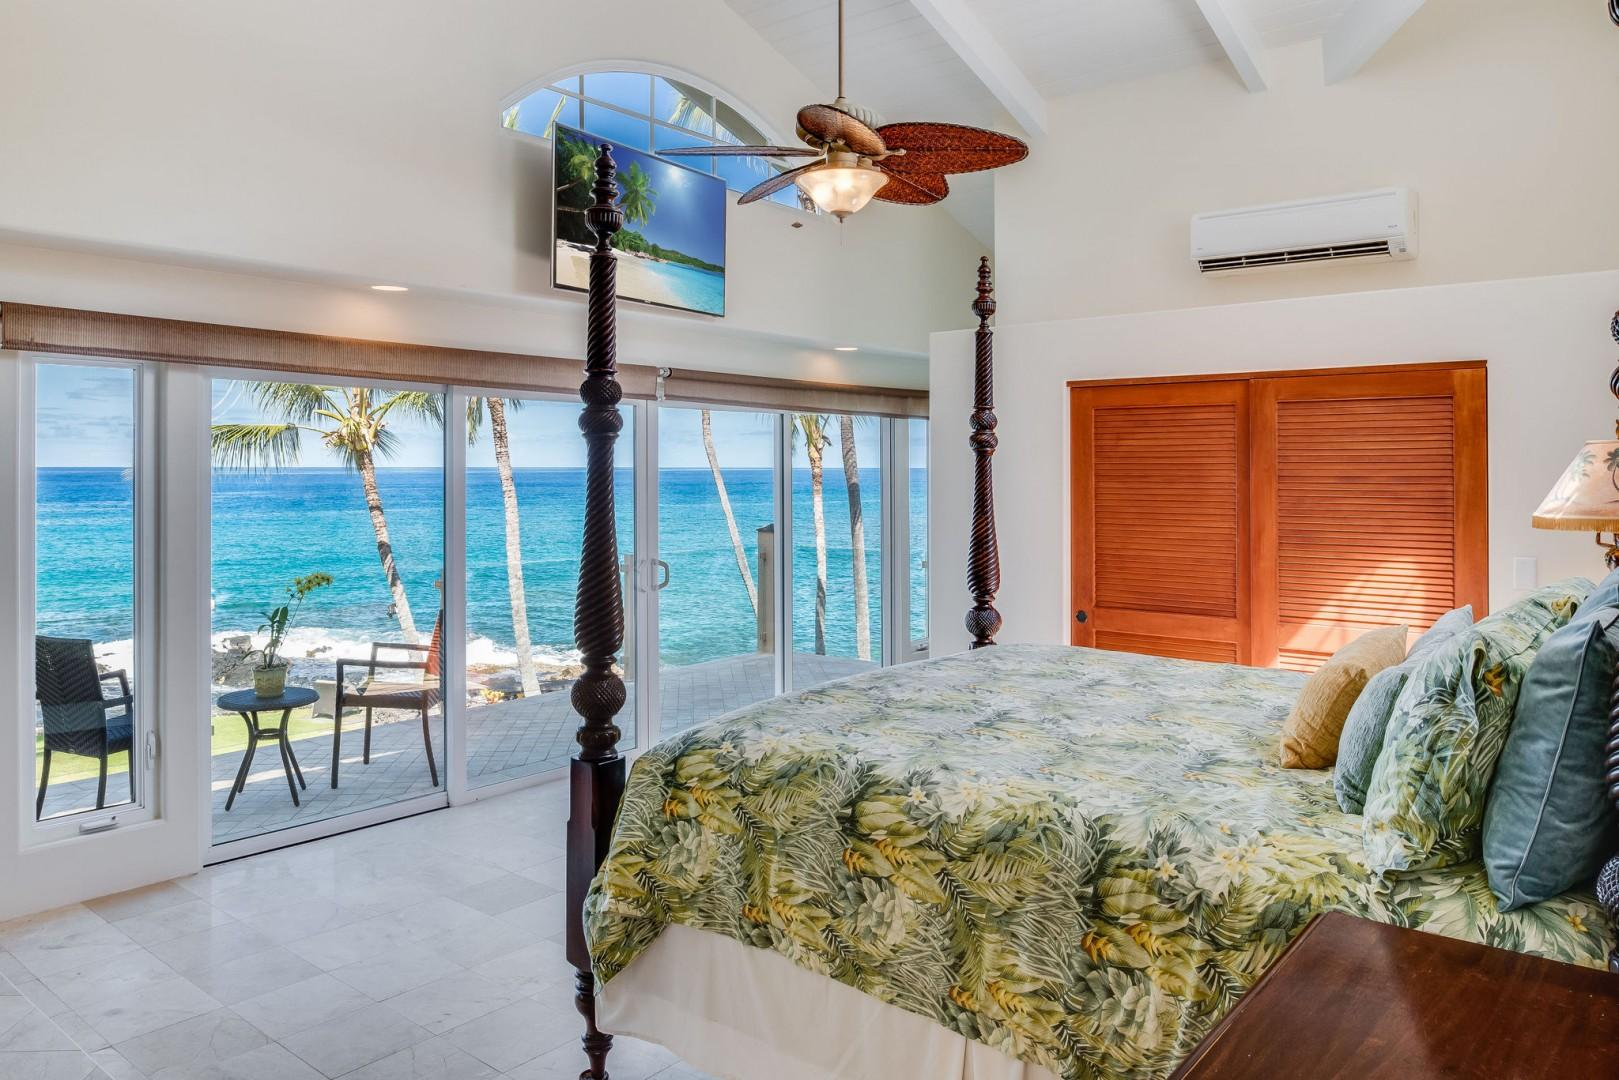 View from the bed in Hale Lihikai